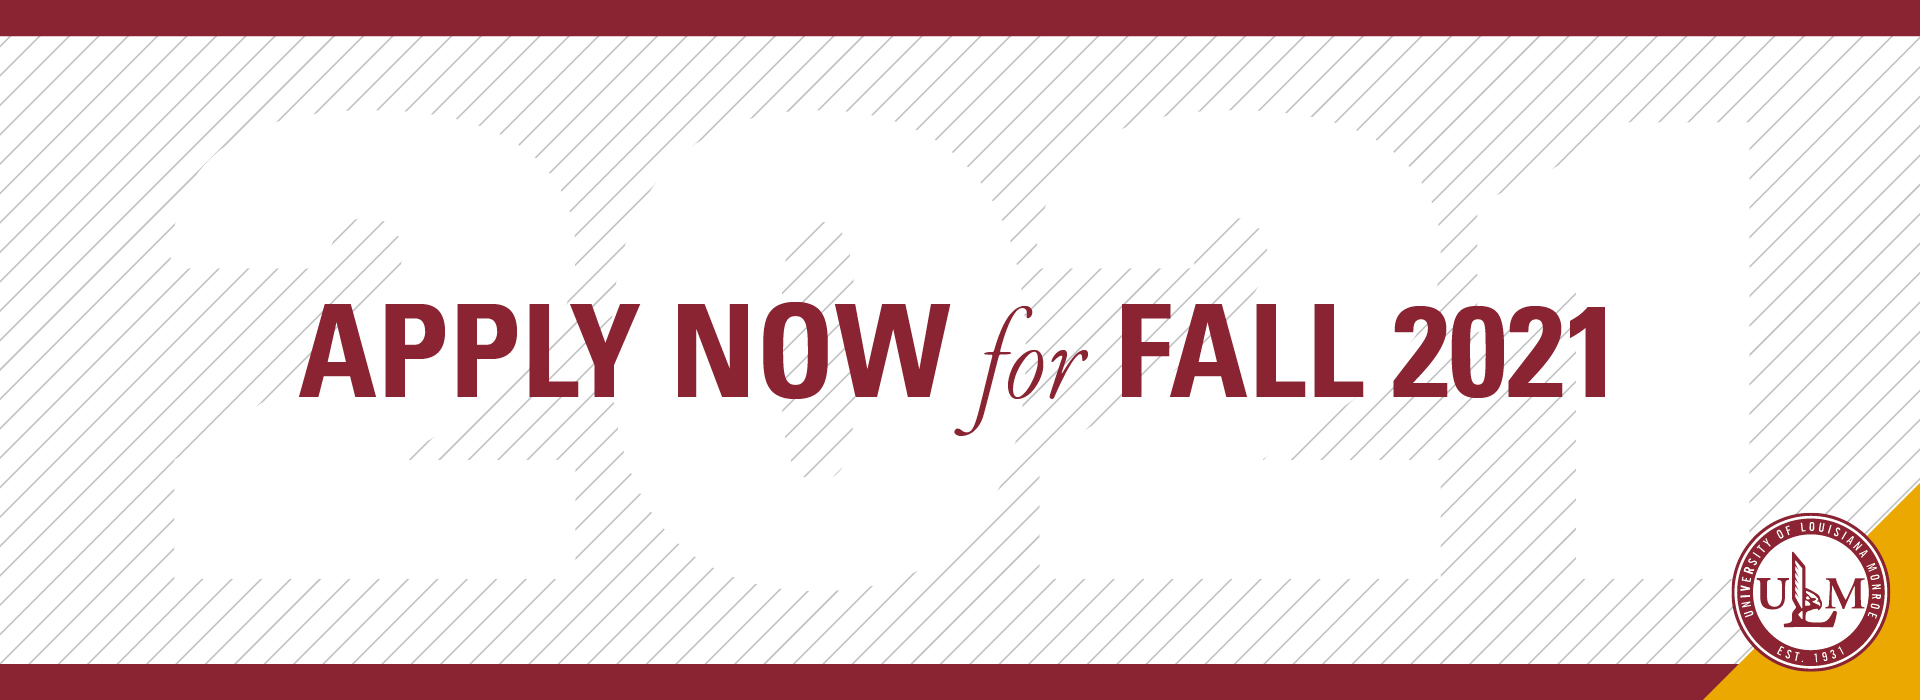 Apply Now for Fall 2021 banner ad